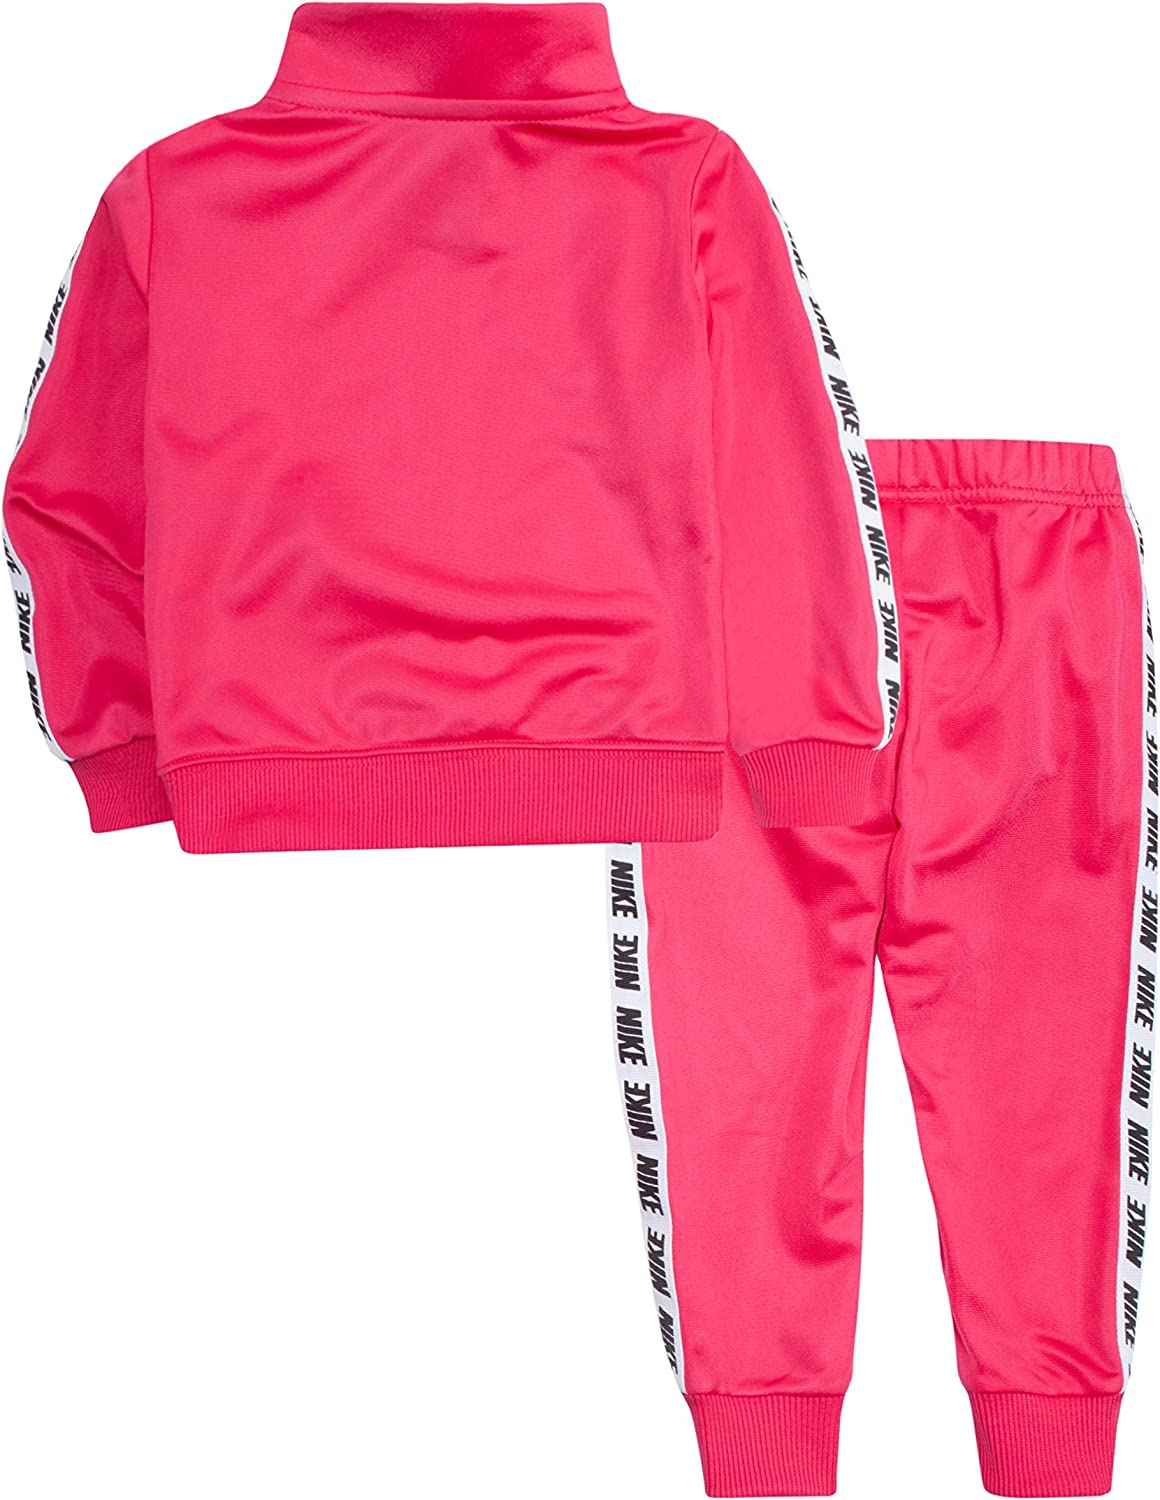 Nike Baby Girls' Tricot Track Suit 2